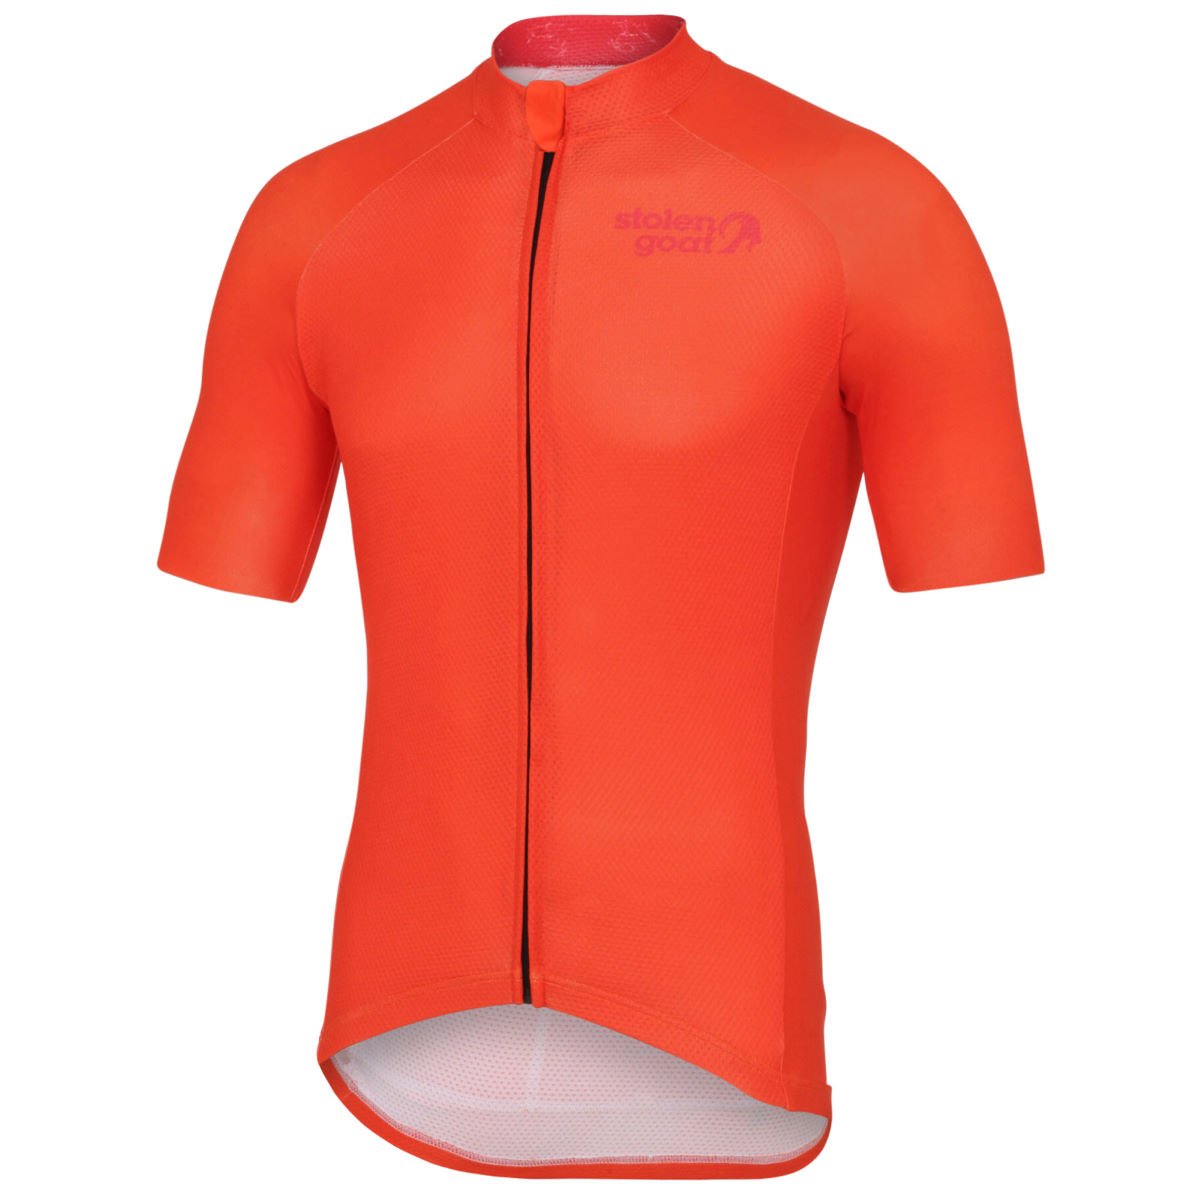 Maillot Stolen Goat Bodyline Core (manches courtes) - L Core Orange